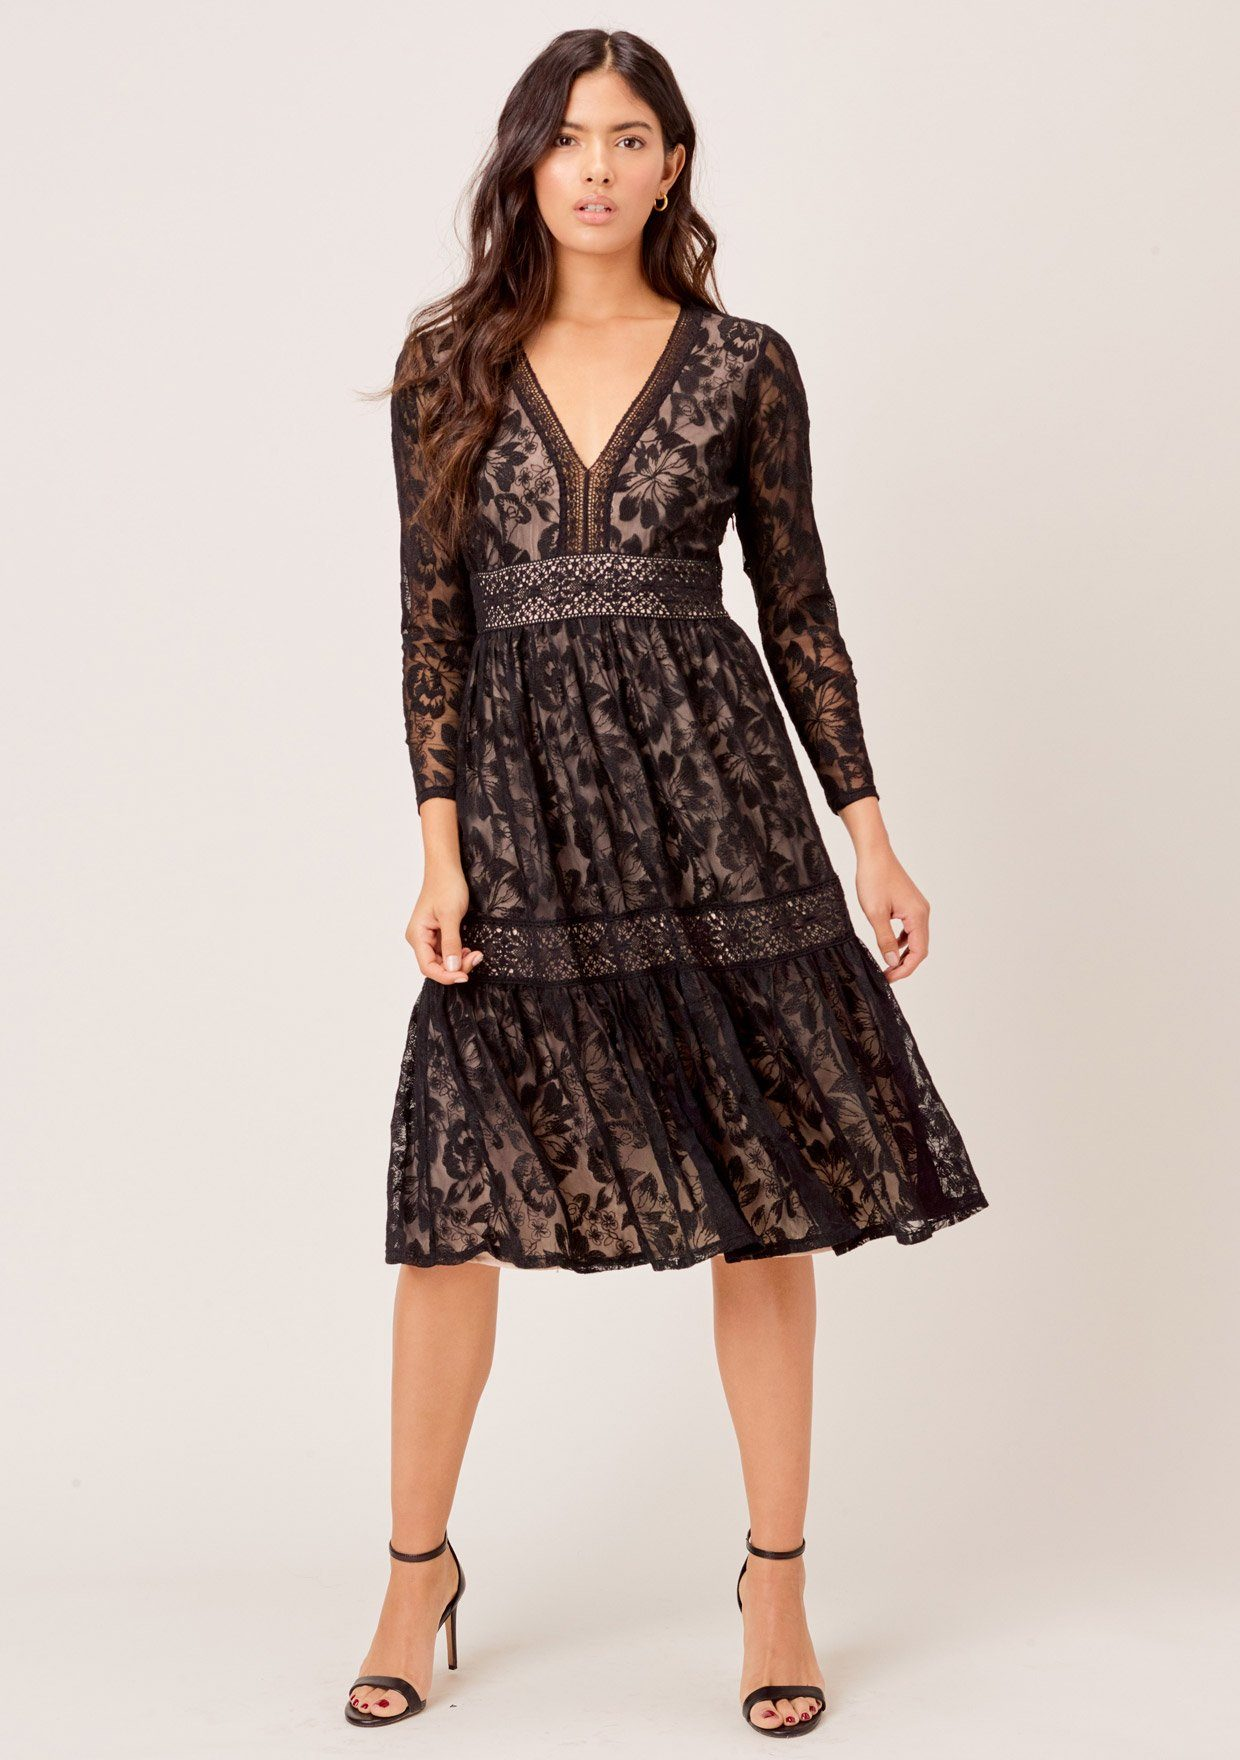 [Color: Black] Lovestitch black Beautiful floral lace midi dress with deep V-neckline and empire waist.